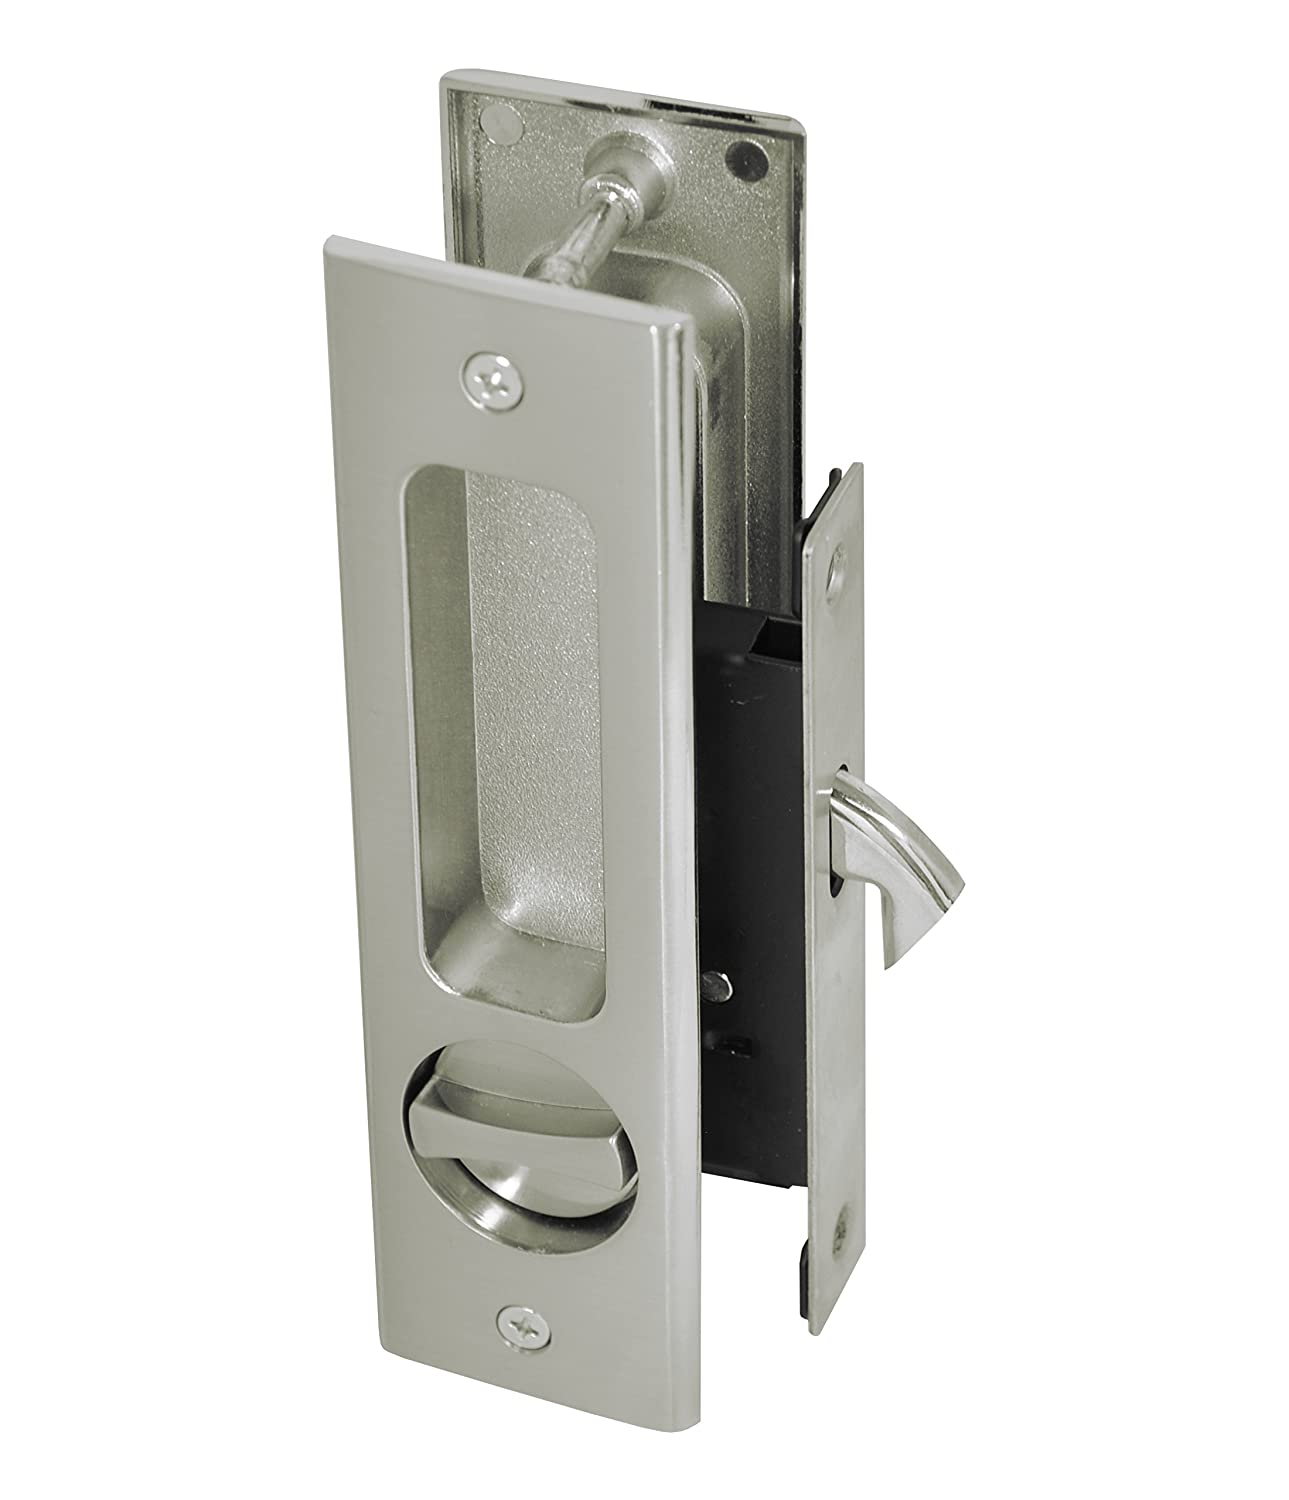 Supreme Bathroom Privacy Sliding Pocket Door Lock Set With Thumb